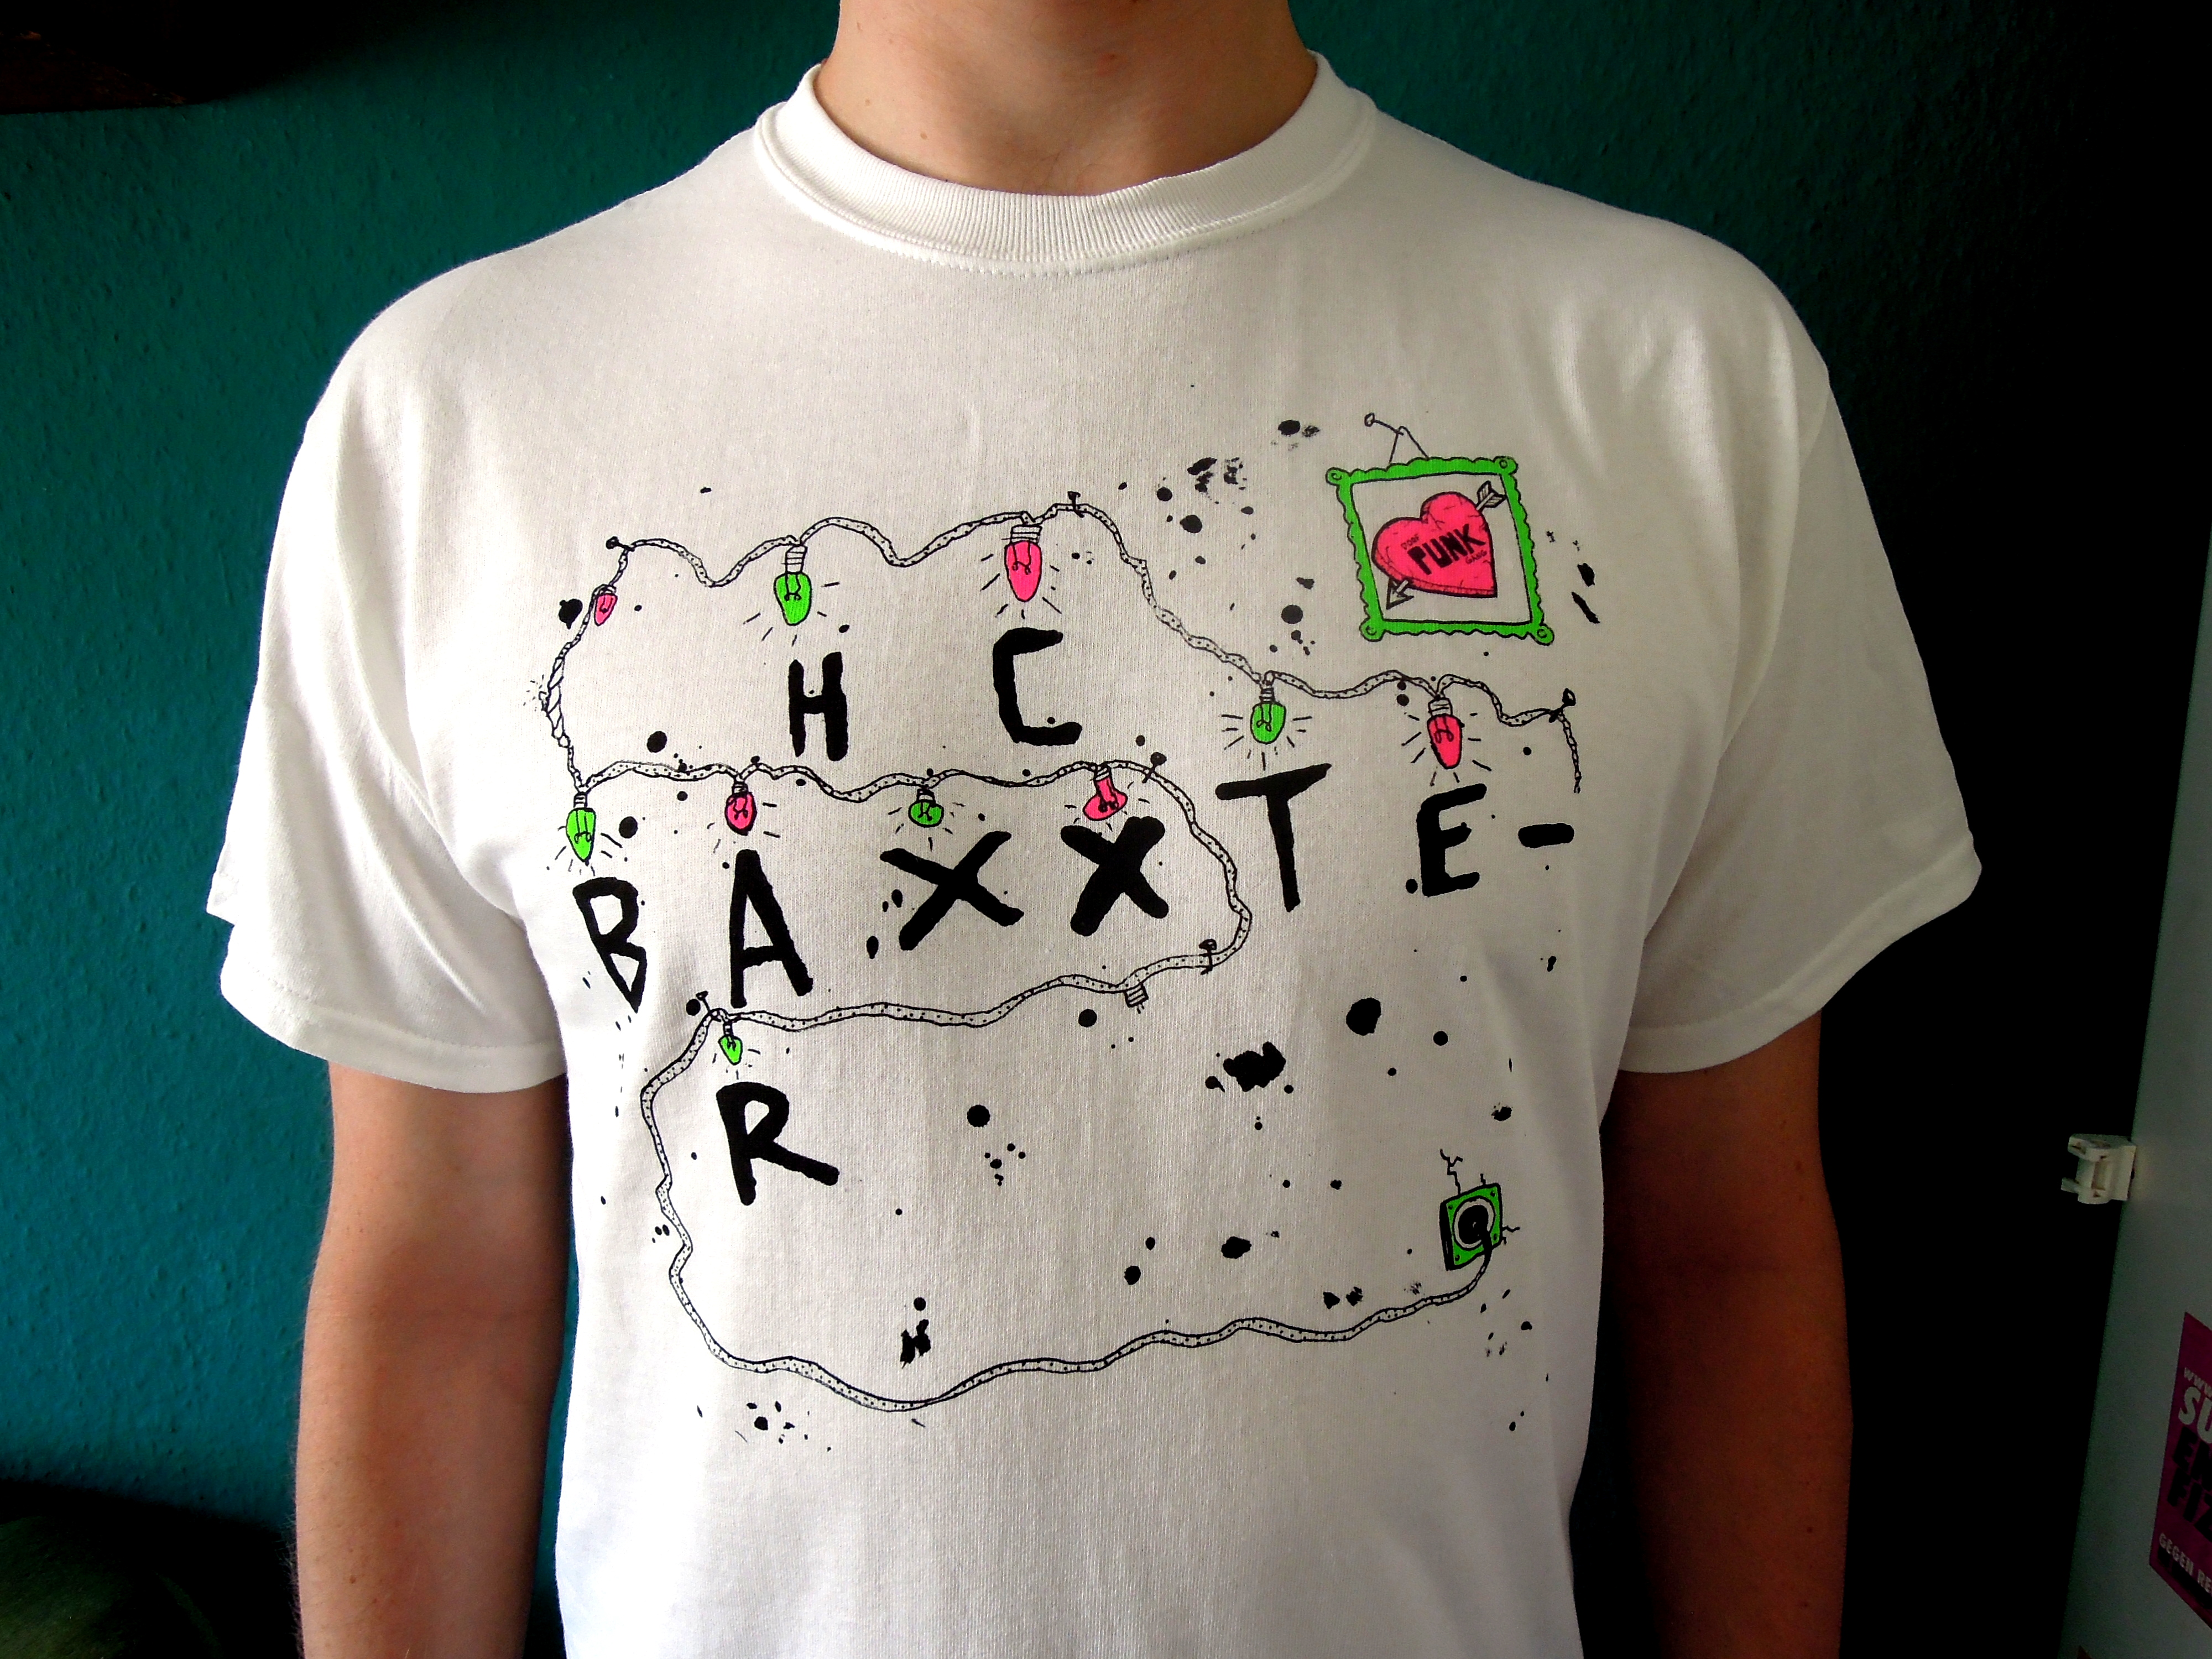 Baxxter Things Shirt